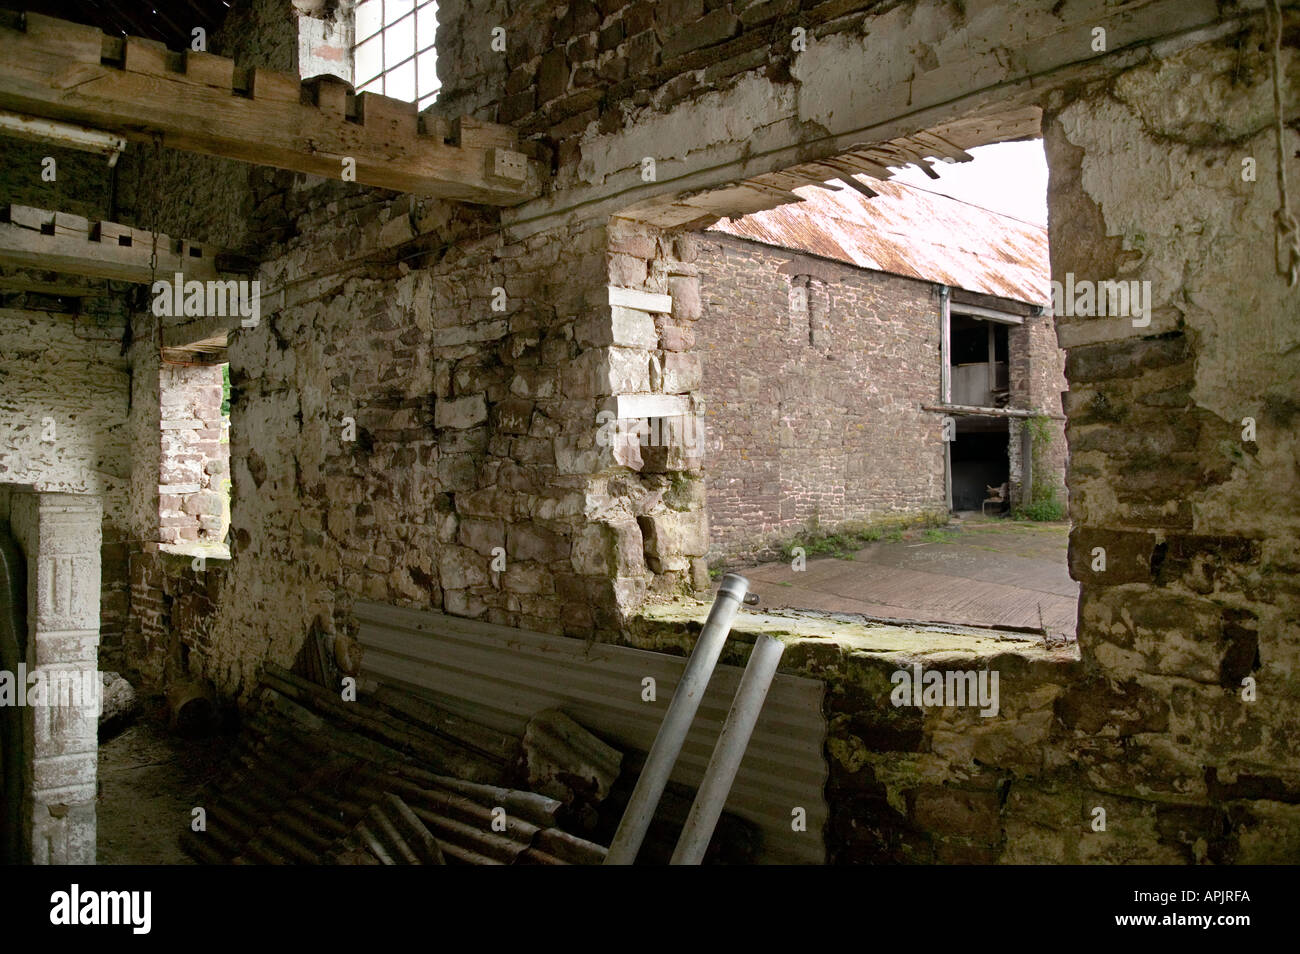 LOOKING FROM INSIDE OLD DERELICT FARM BUILDINGS FOR POSSIBLE CONVERSION UK - Stock Image